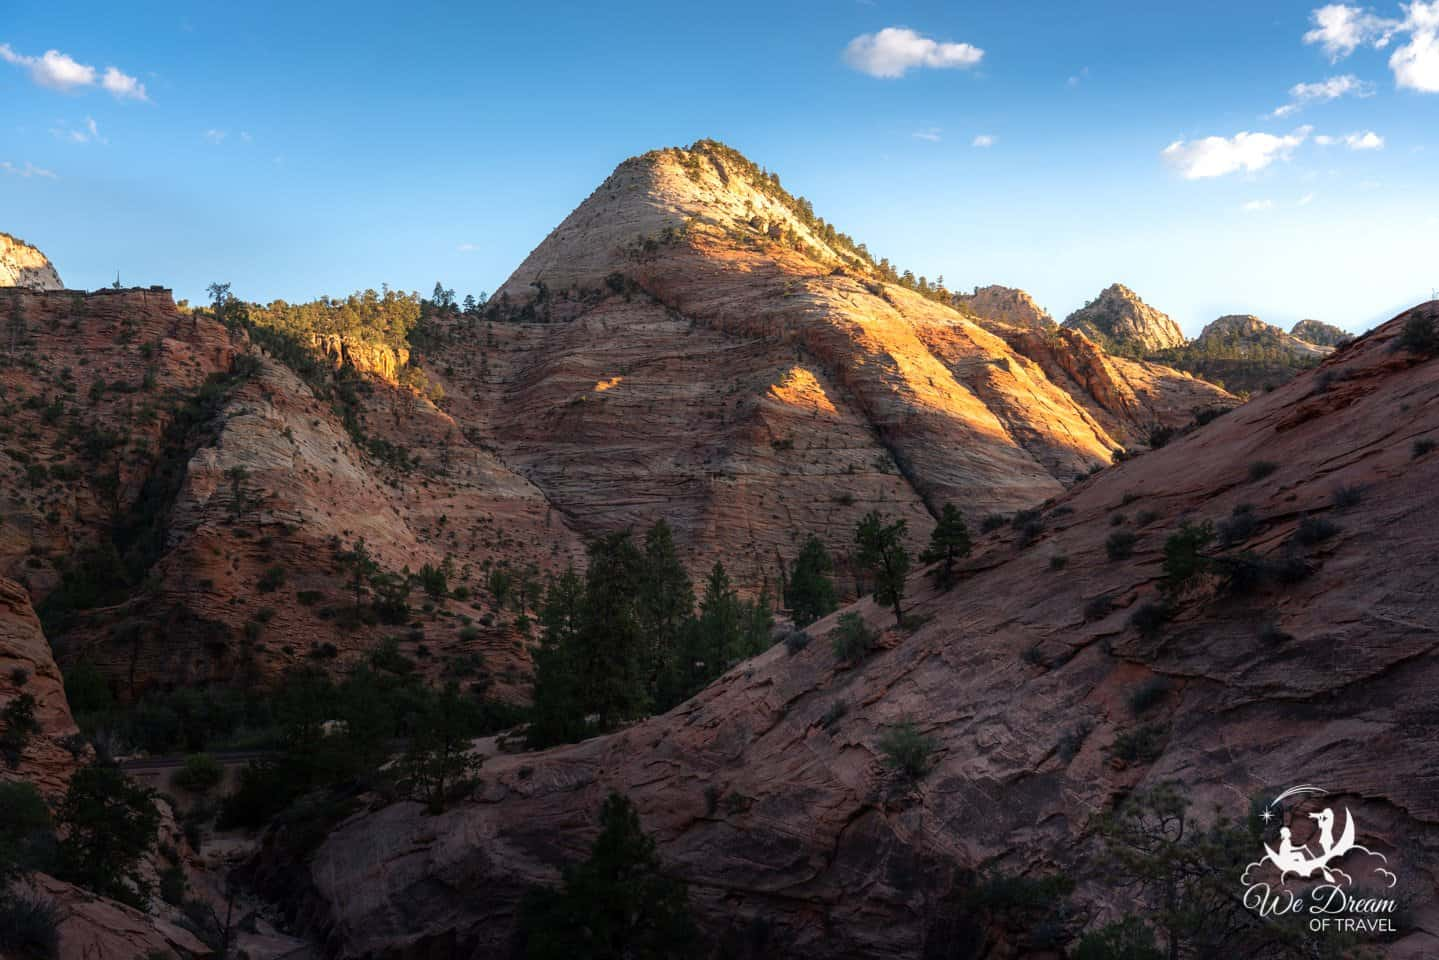 A view from the Carmel Highway connecting Zion National Park and Bryce Canyon.